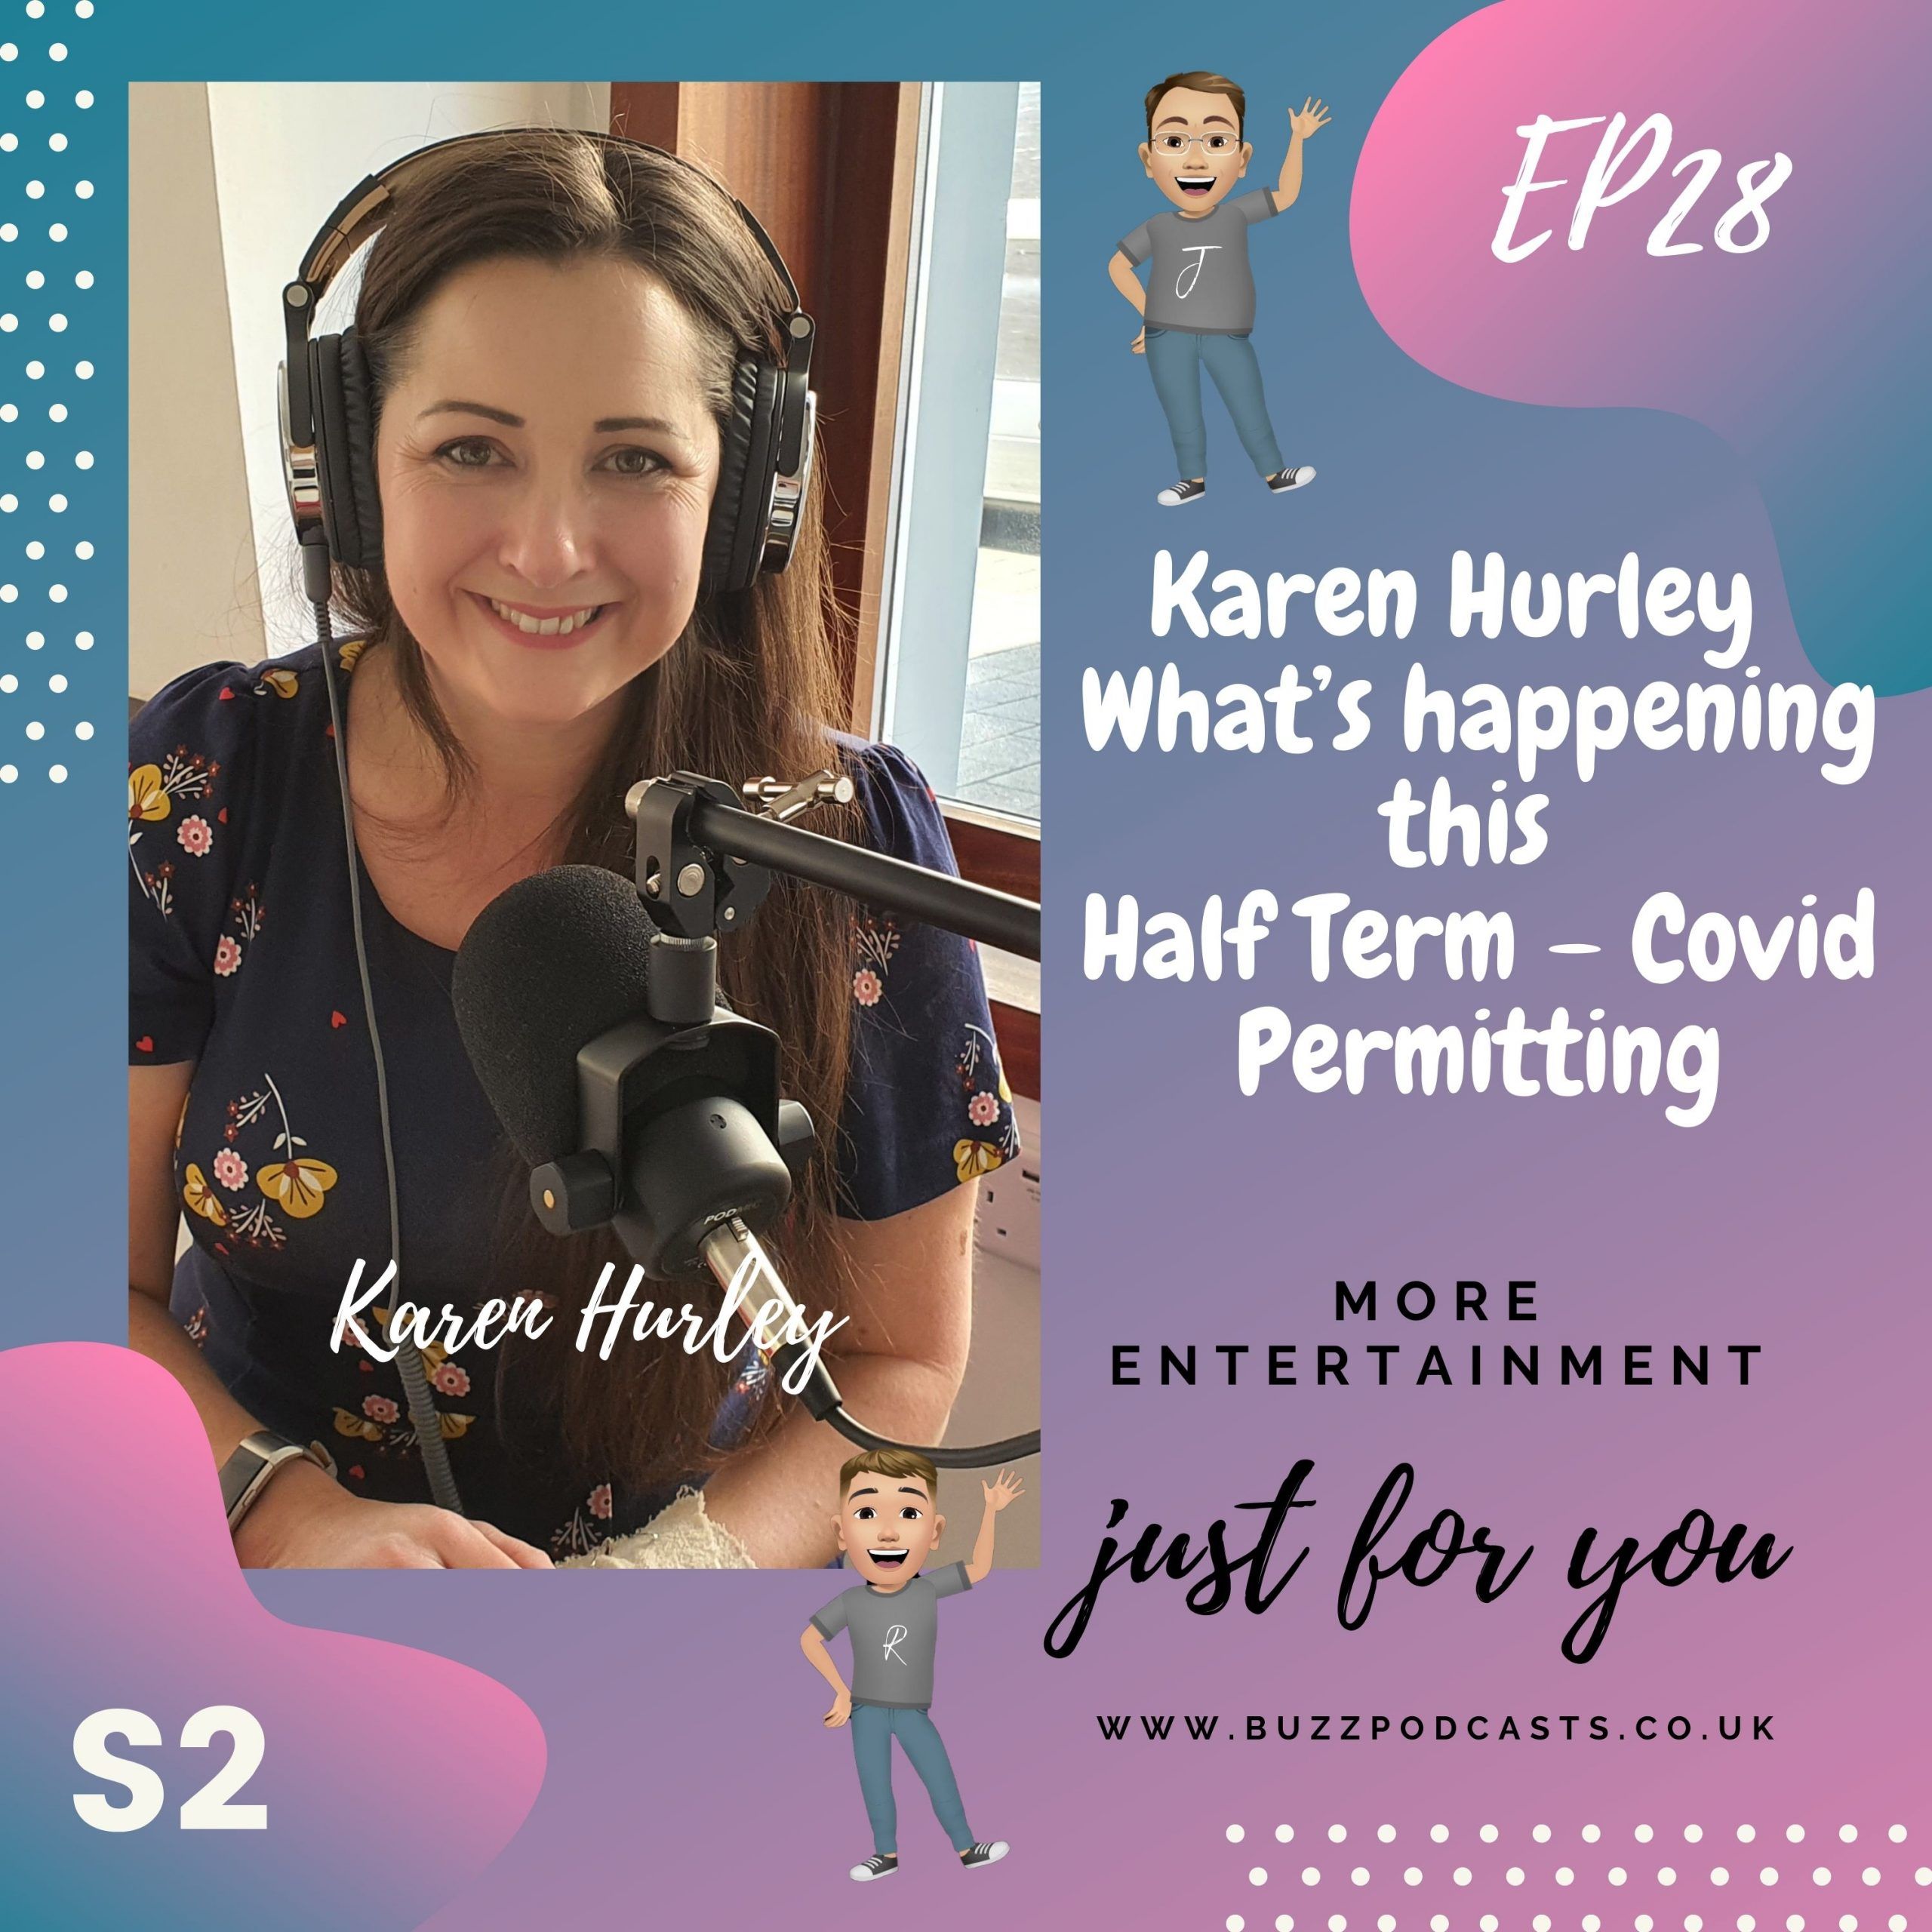 Karen Hurley – What's happening this Half Term – Covid Permitting